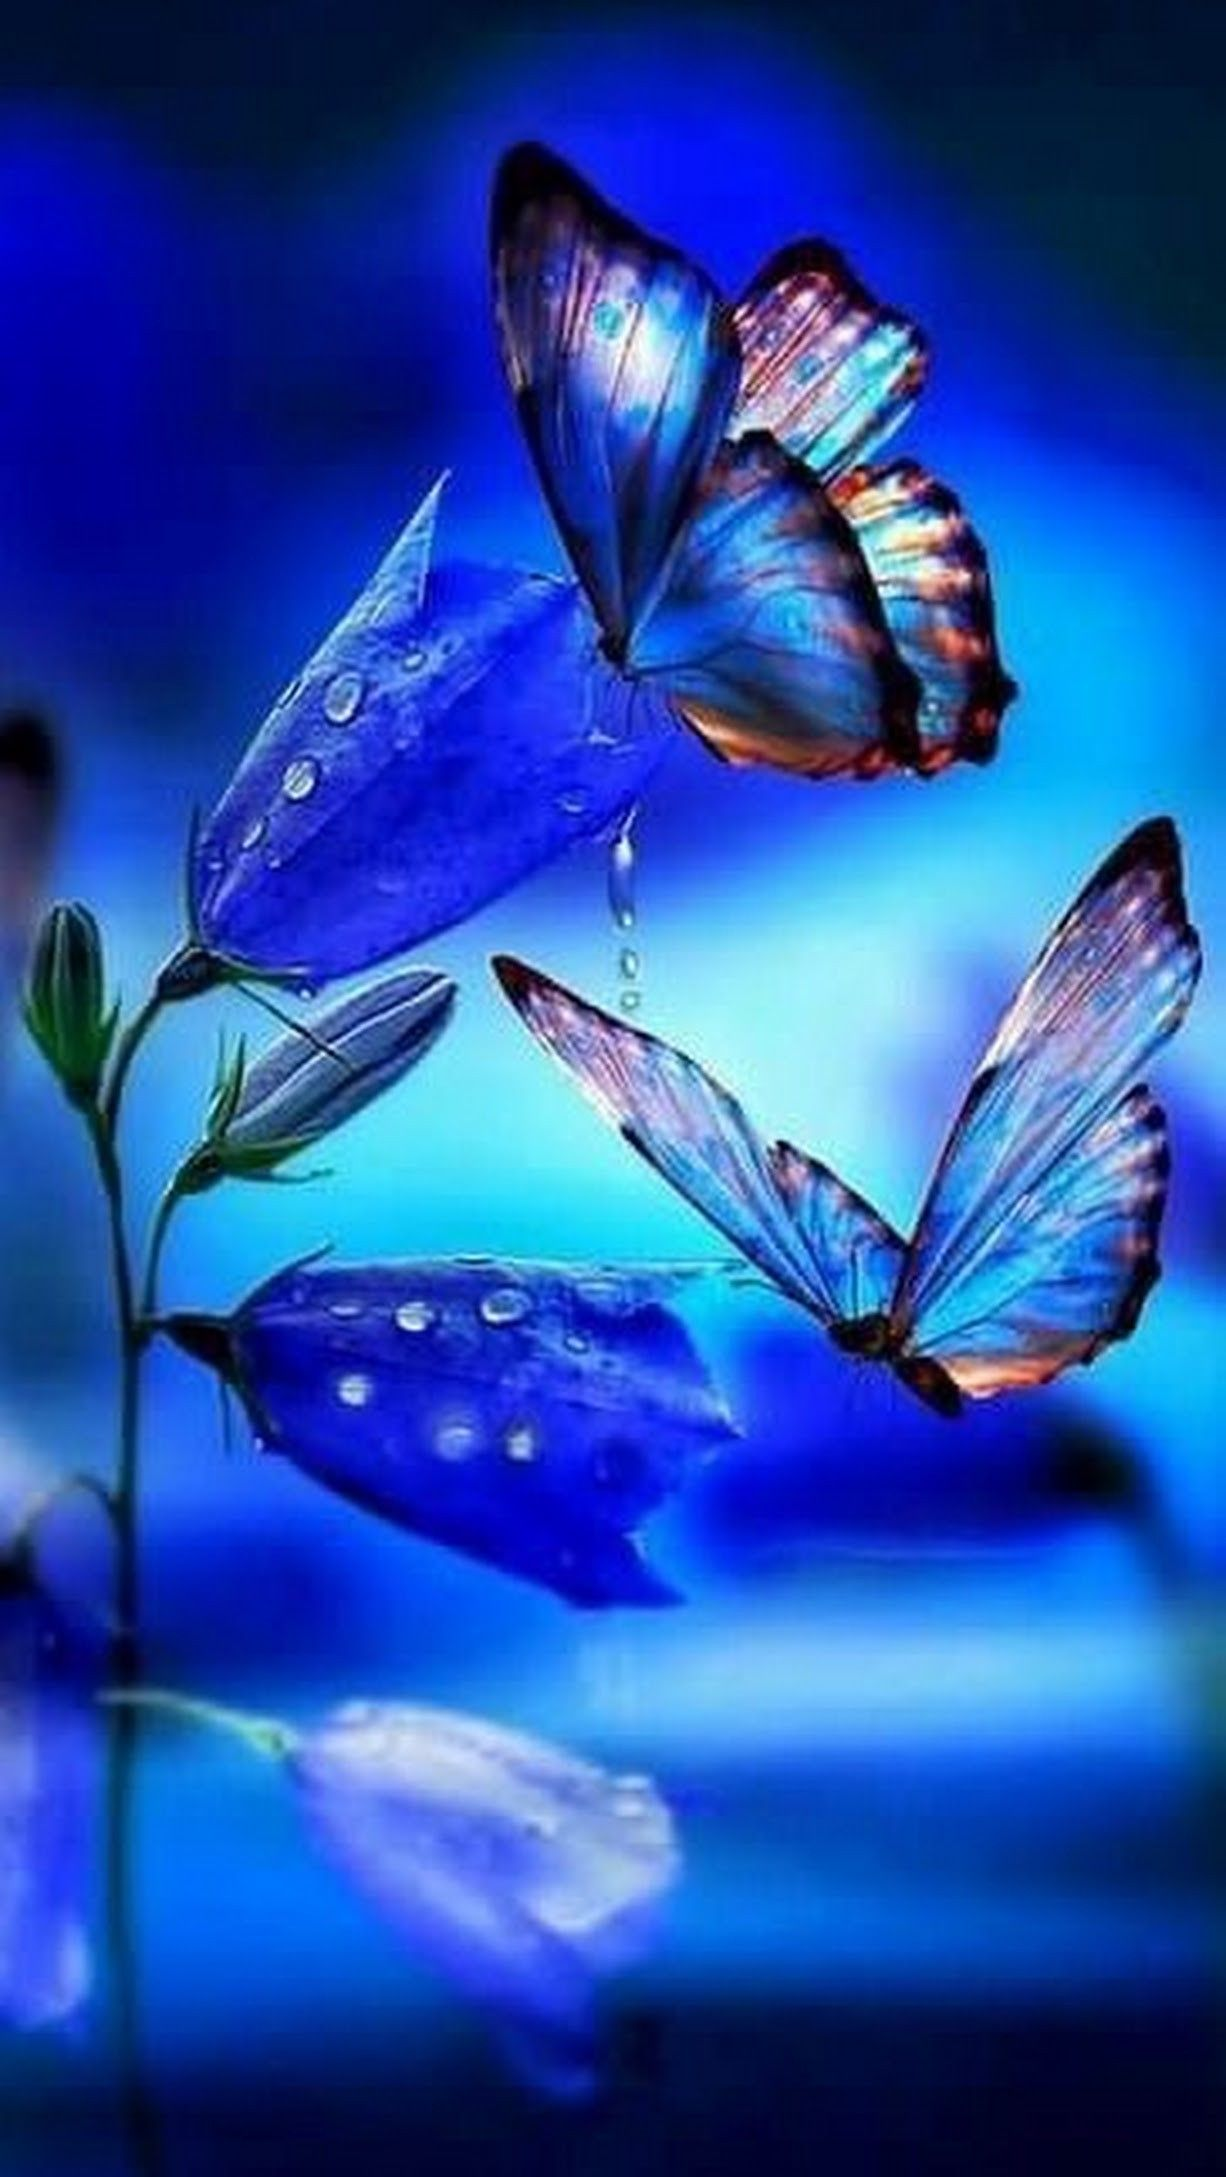 Butterfly Ringtones And Wallpapers Free By Zedge Butterfly Wallpaper Iphone Butterfly Wallpaper Backgrounds Beautiful Nature Wallpaper